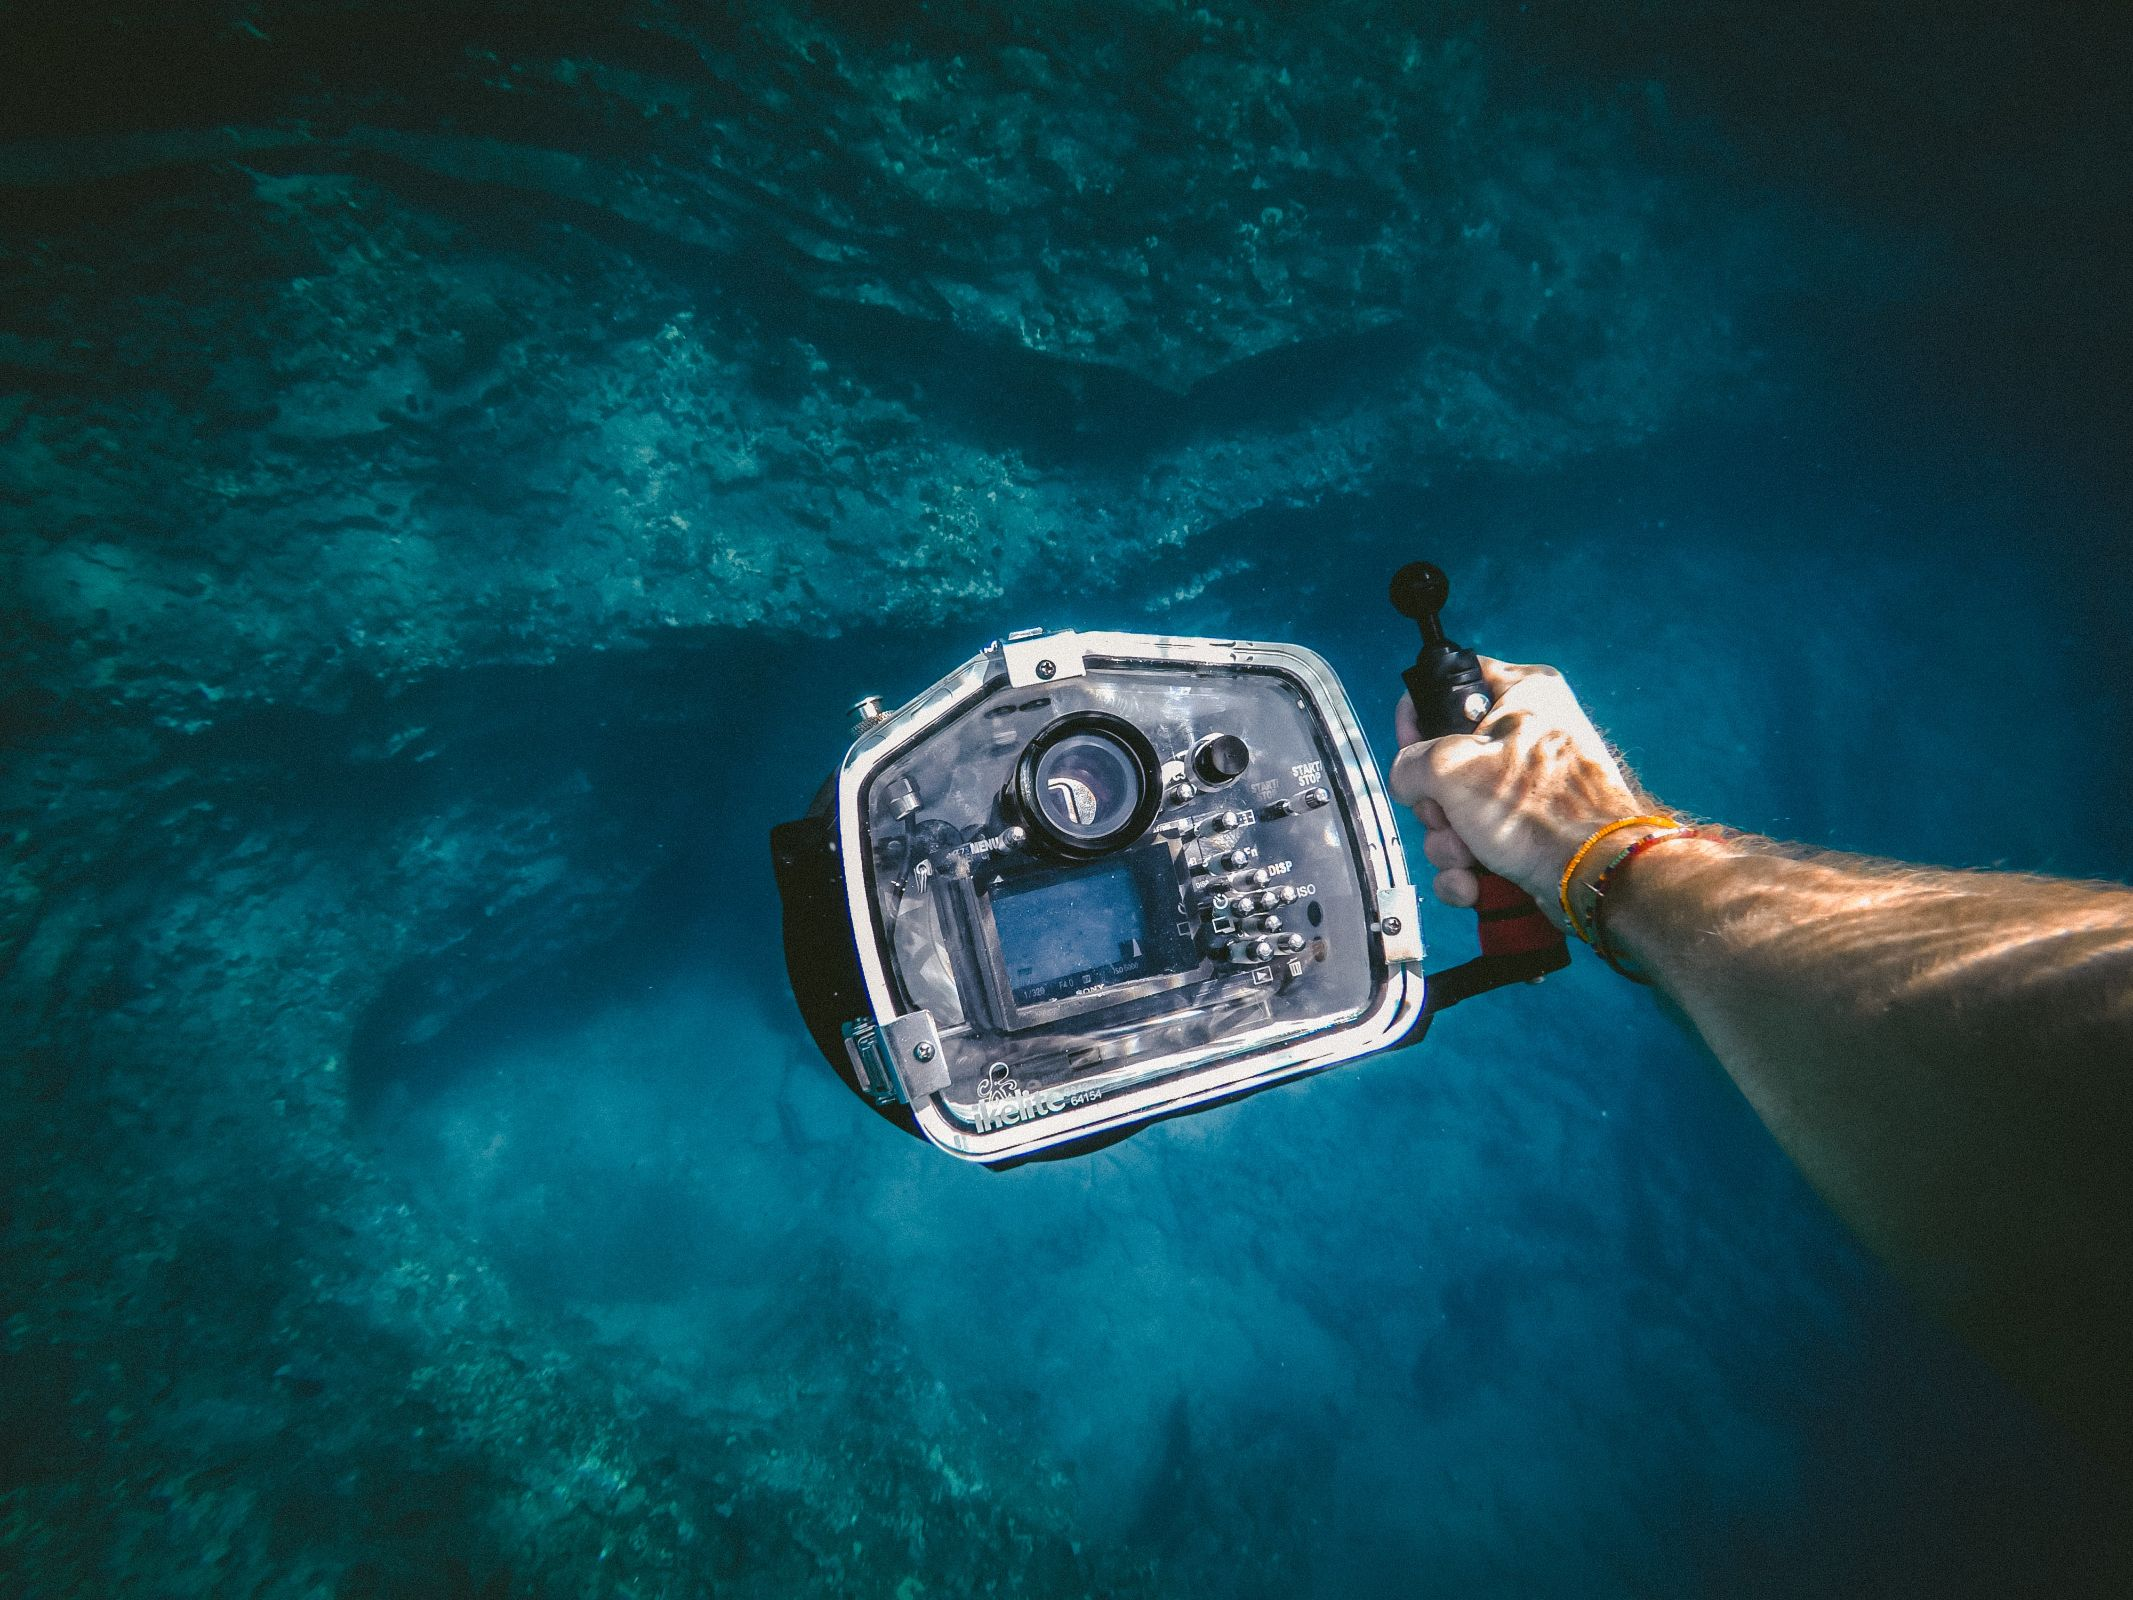 A person holding a camera underwater